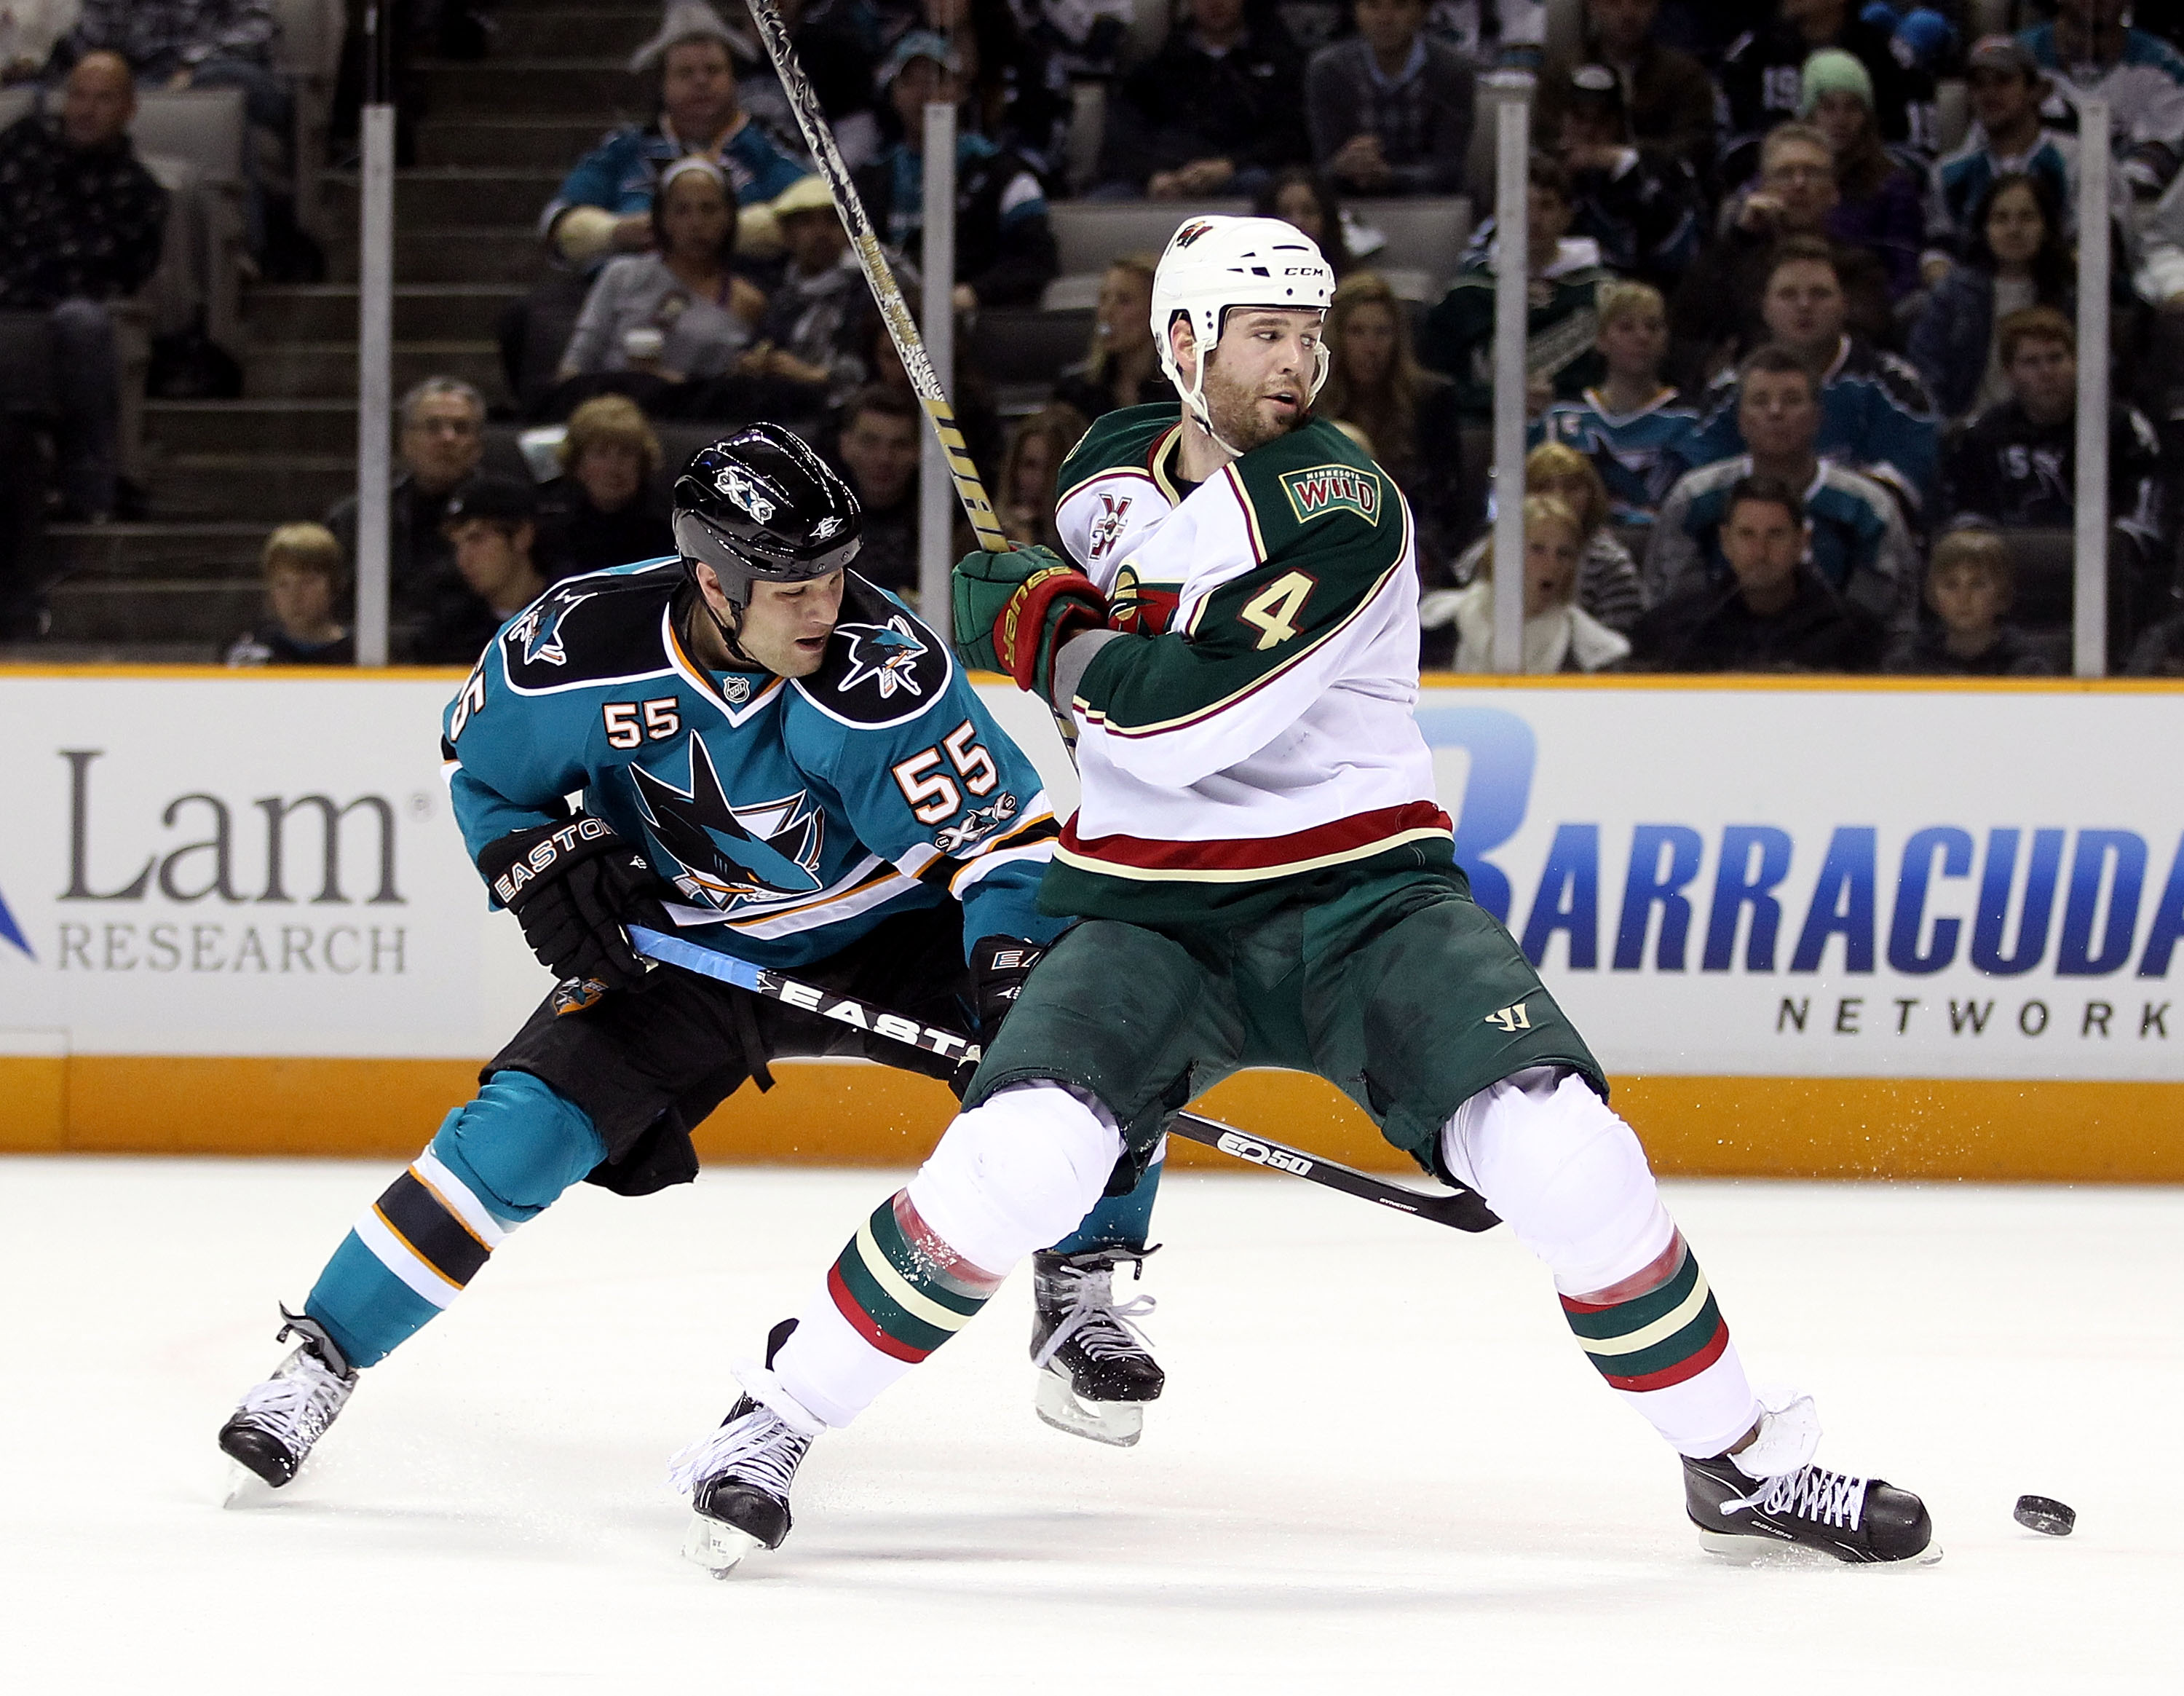 SAN JOSE, CA - JANUARY 22:  Ben Eager #55 of the San Jose Sharks and Clayton Stoner #4 of the Minnesota Wild go for the puck at HP Pavilion on January 22, 2011 in San Jose, California.  (Photo by Ezra Shaw/Getty Images)